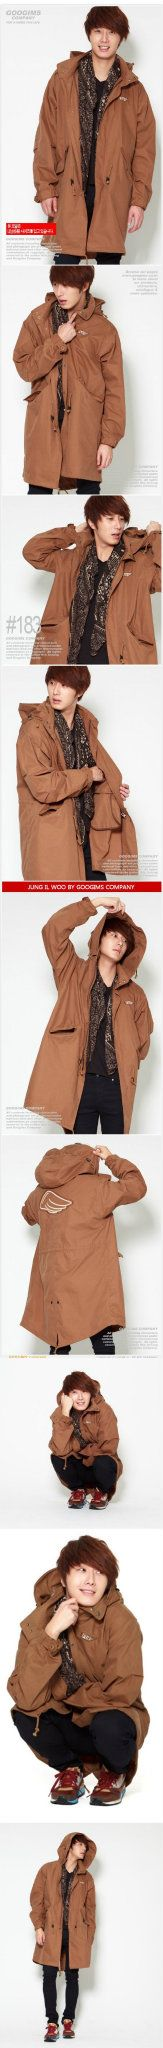 2011 10 Jung II-woo for Googims. Part 3 00012